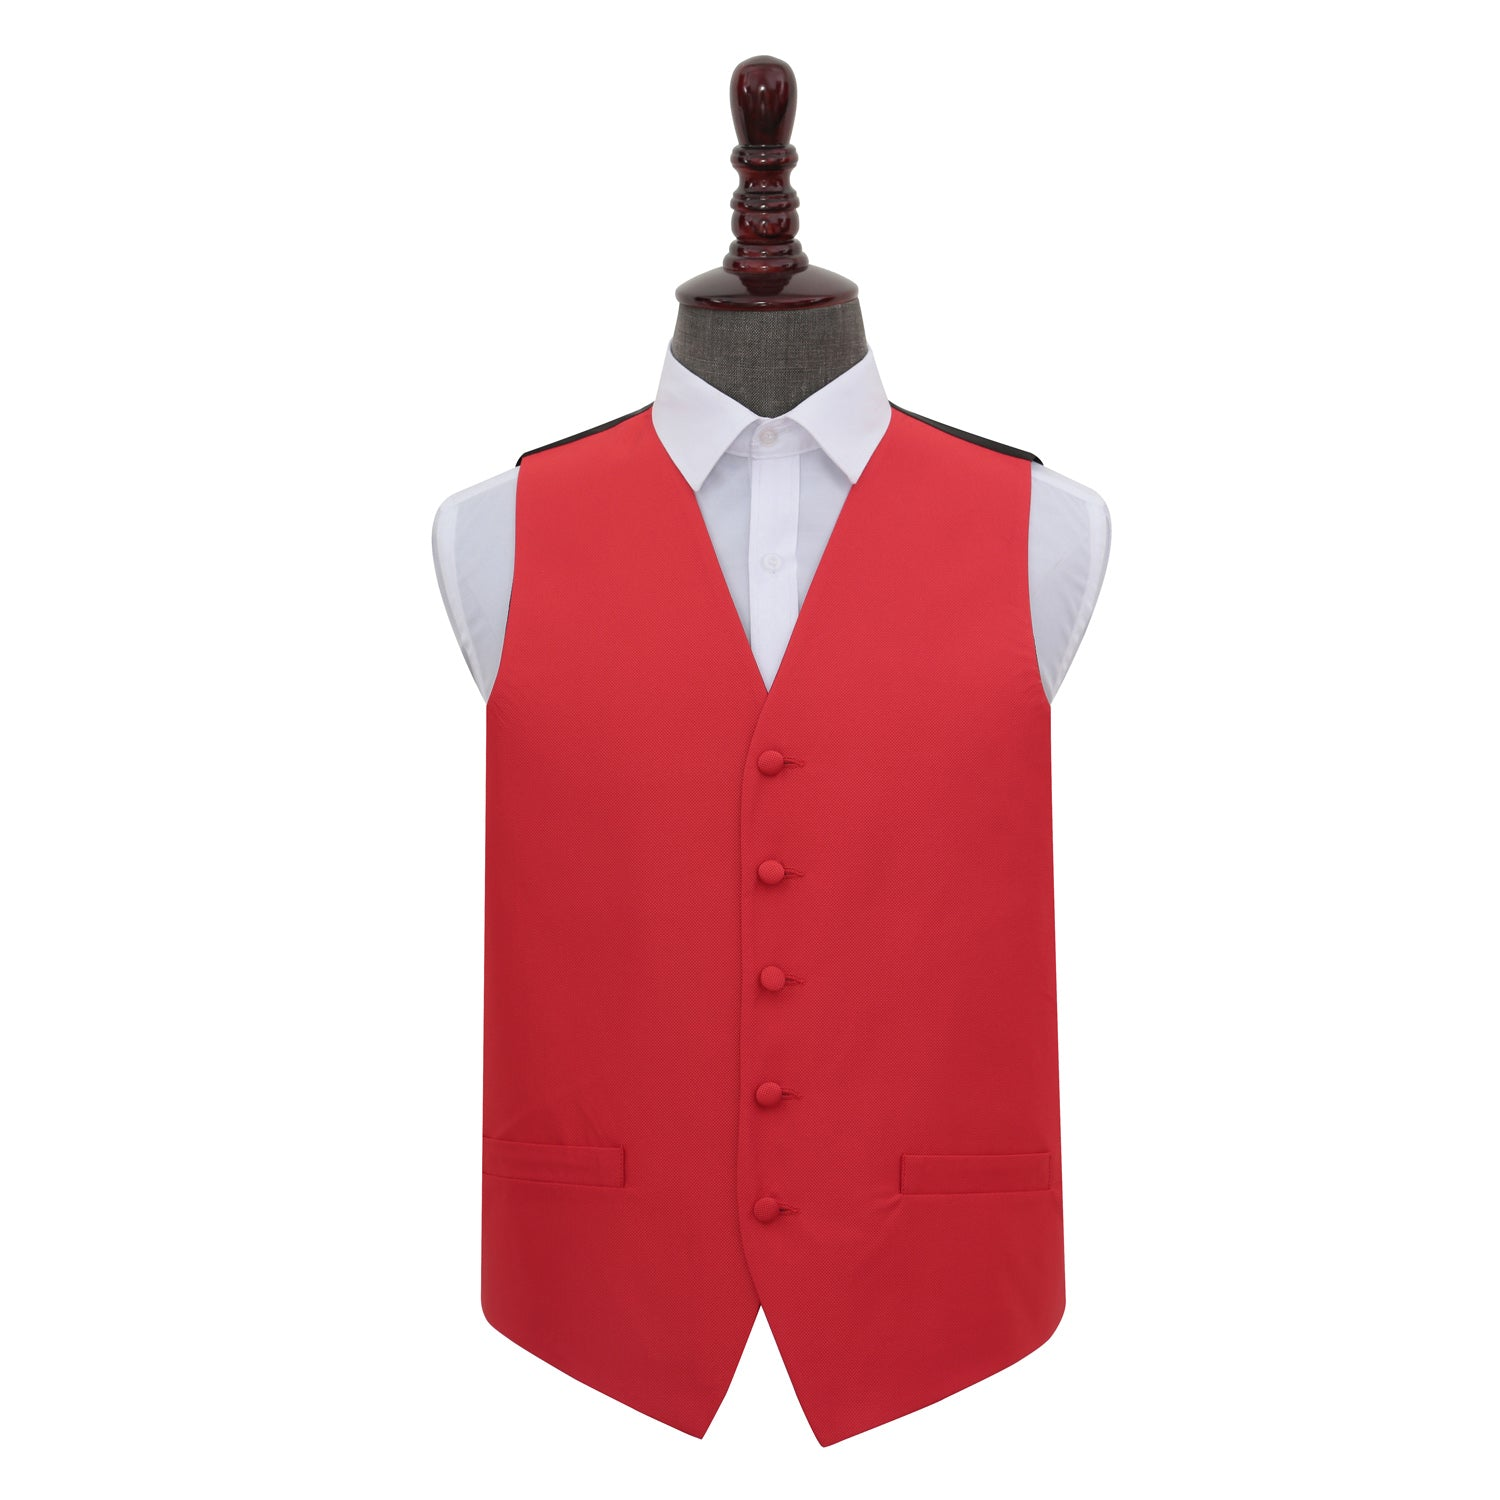 Solid Check Waistcoat - Red, 42', Clothing & Accessories by Gifts24-7